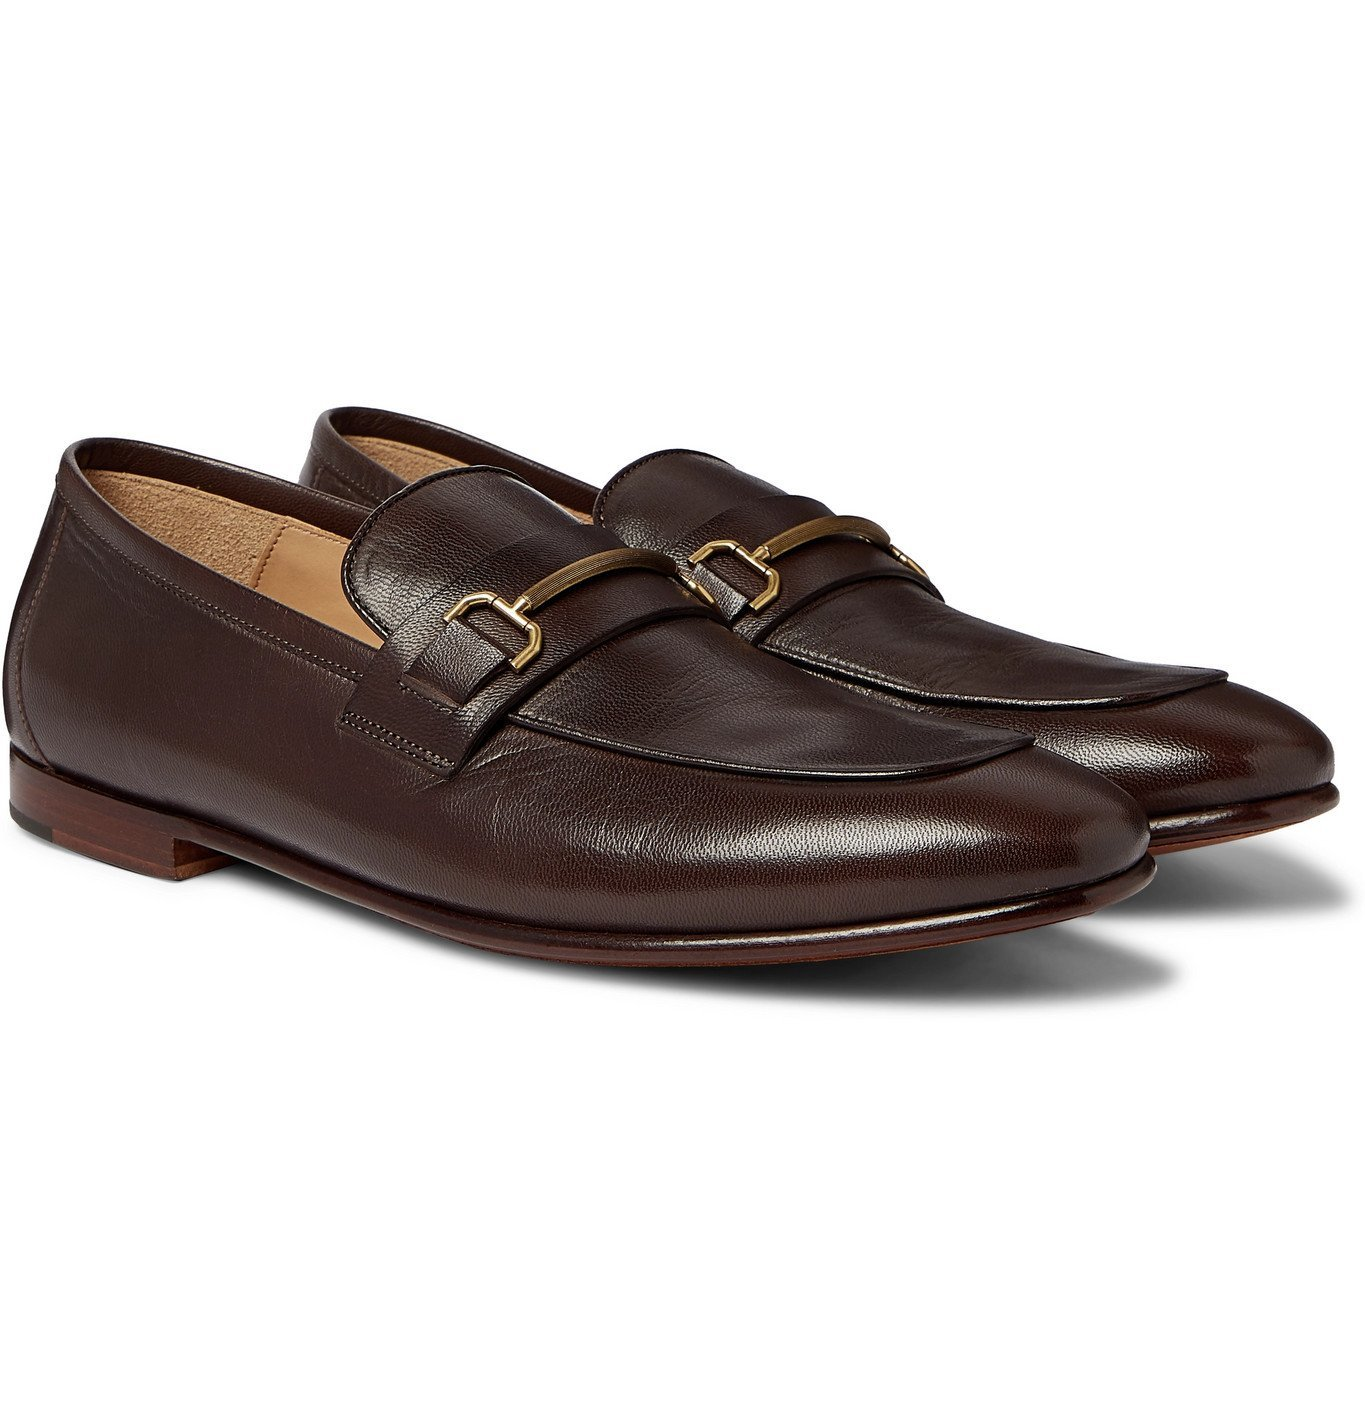 Dunhill - Chiltern Leather Loafers - Brown